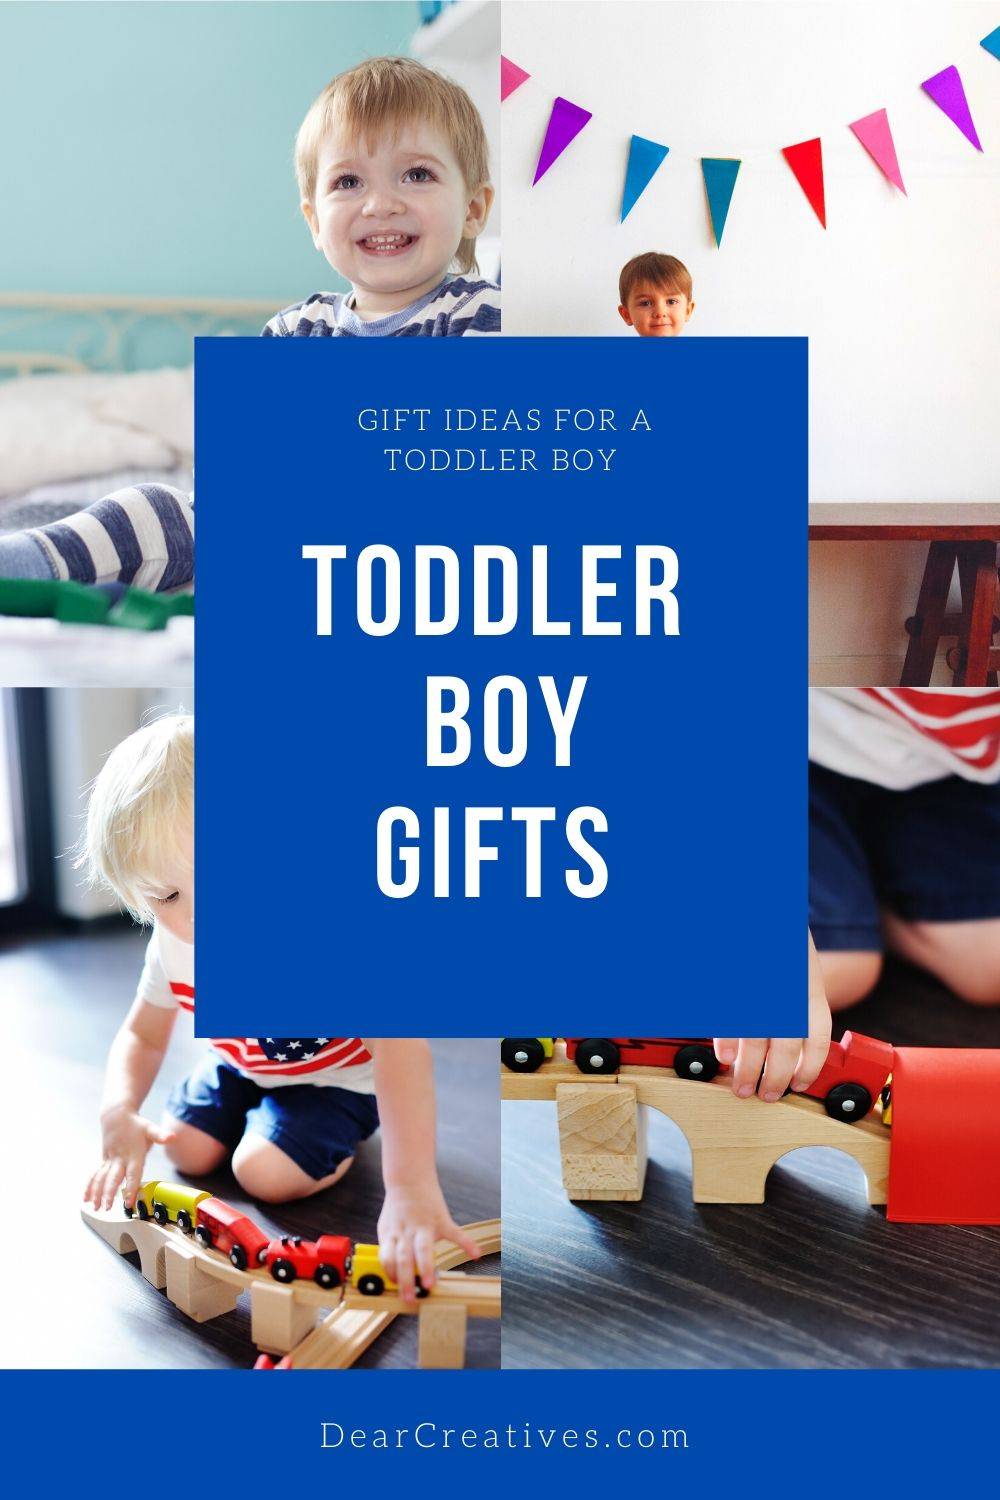 Toddler Boy Gifts They Will Love!